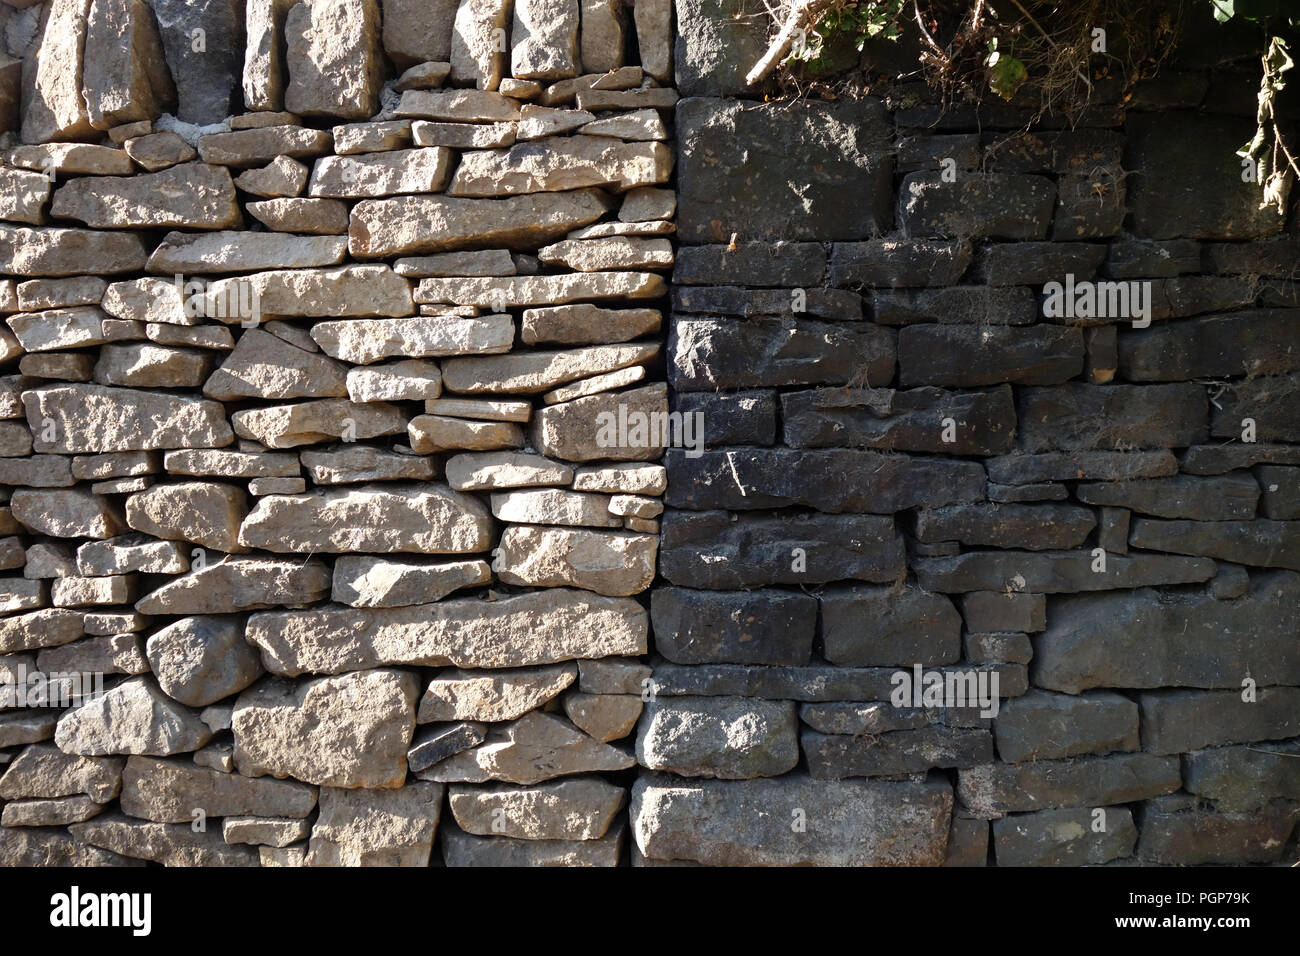 Very New dry stone wall next to a very Old Dry stoned dark stone wall joined up shows wonderful contrasting two walls - Stock Image